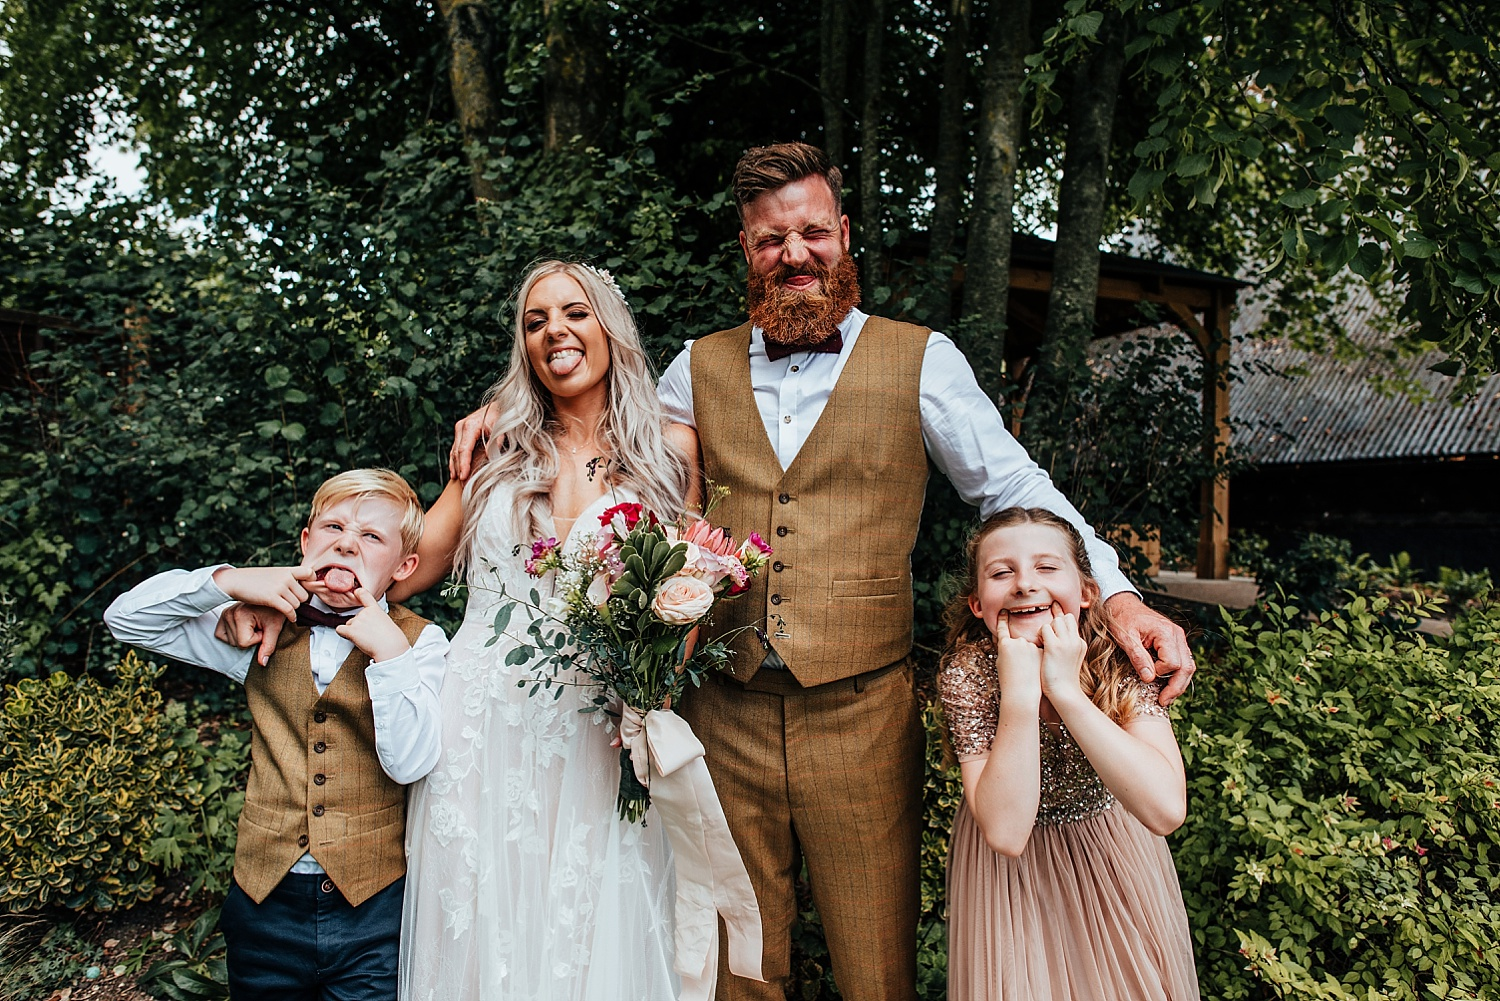 boho bride and grrom with children pulling silly faces